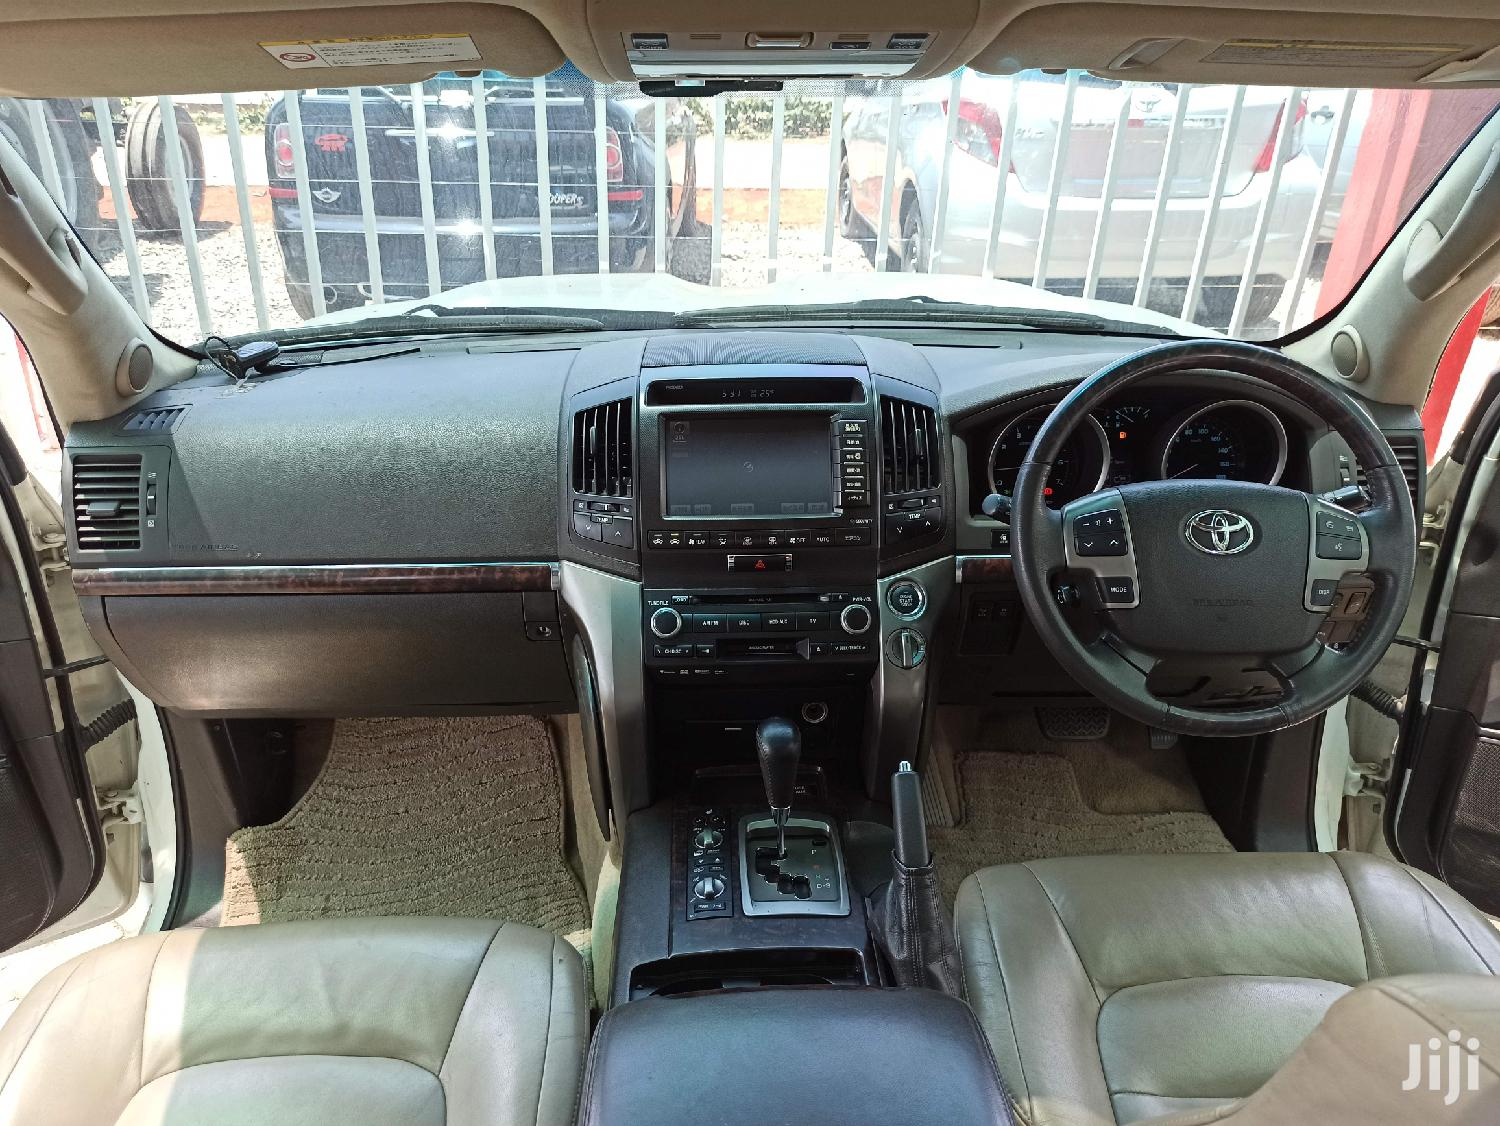 Toyota Land Cruiser 2011 White | Cars for sale in Kilimani, Nairobi, Kenya